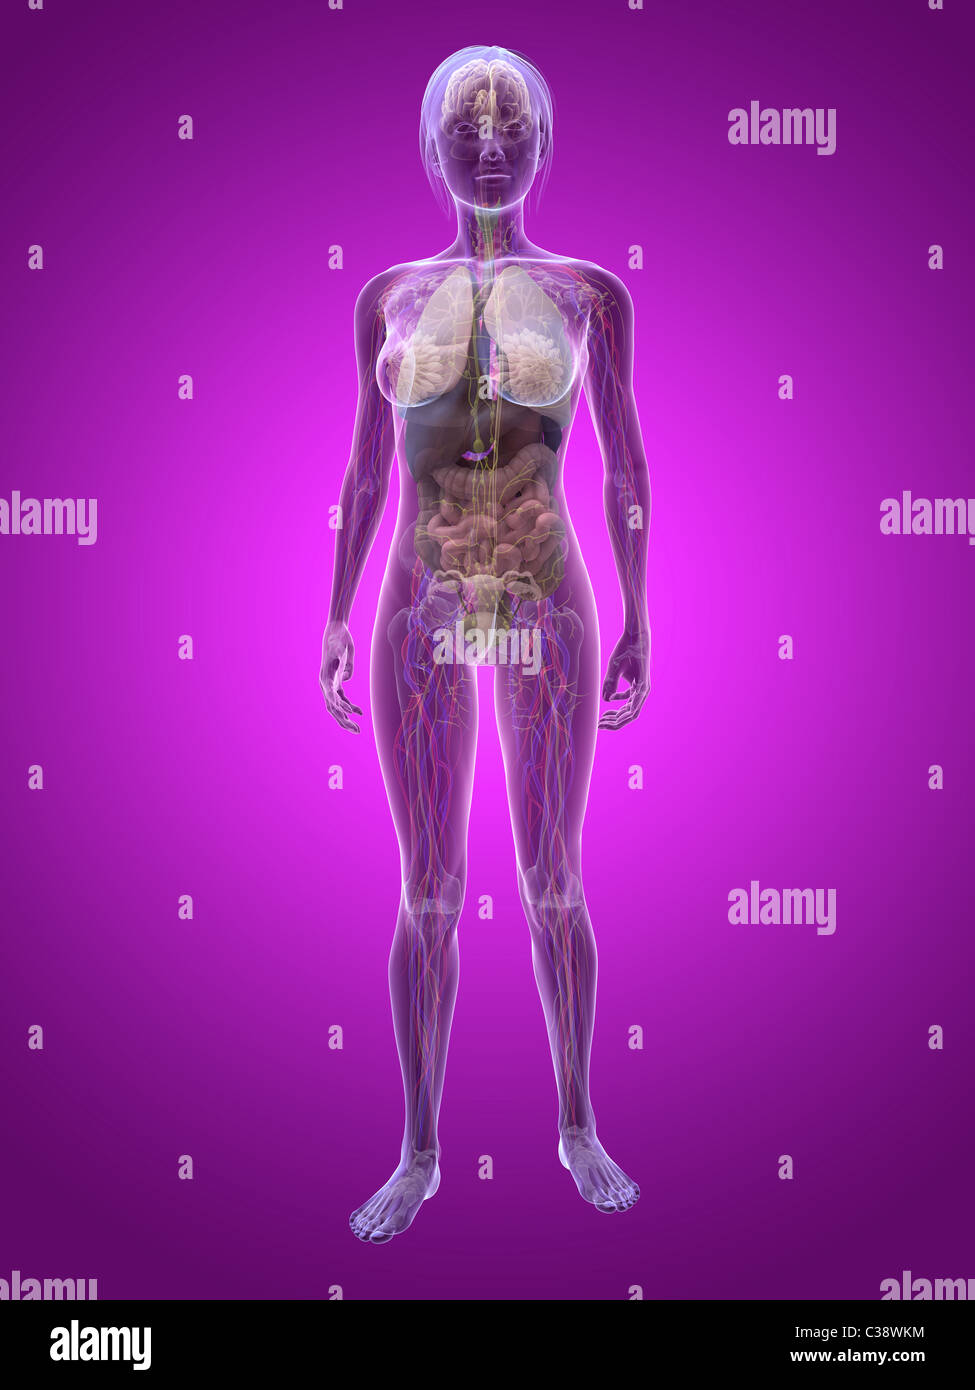 Female Body Organs Stock Photos & Female Body Organs Stock Images ...